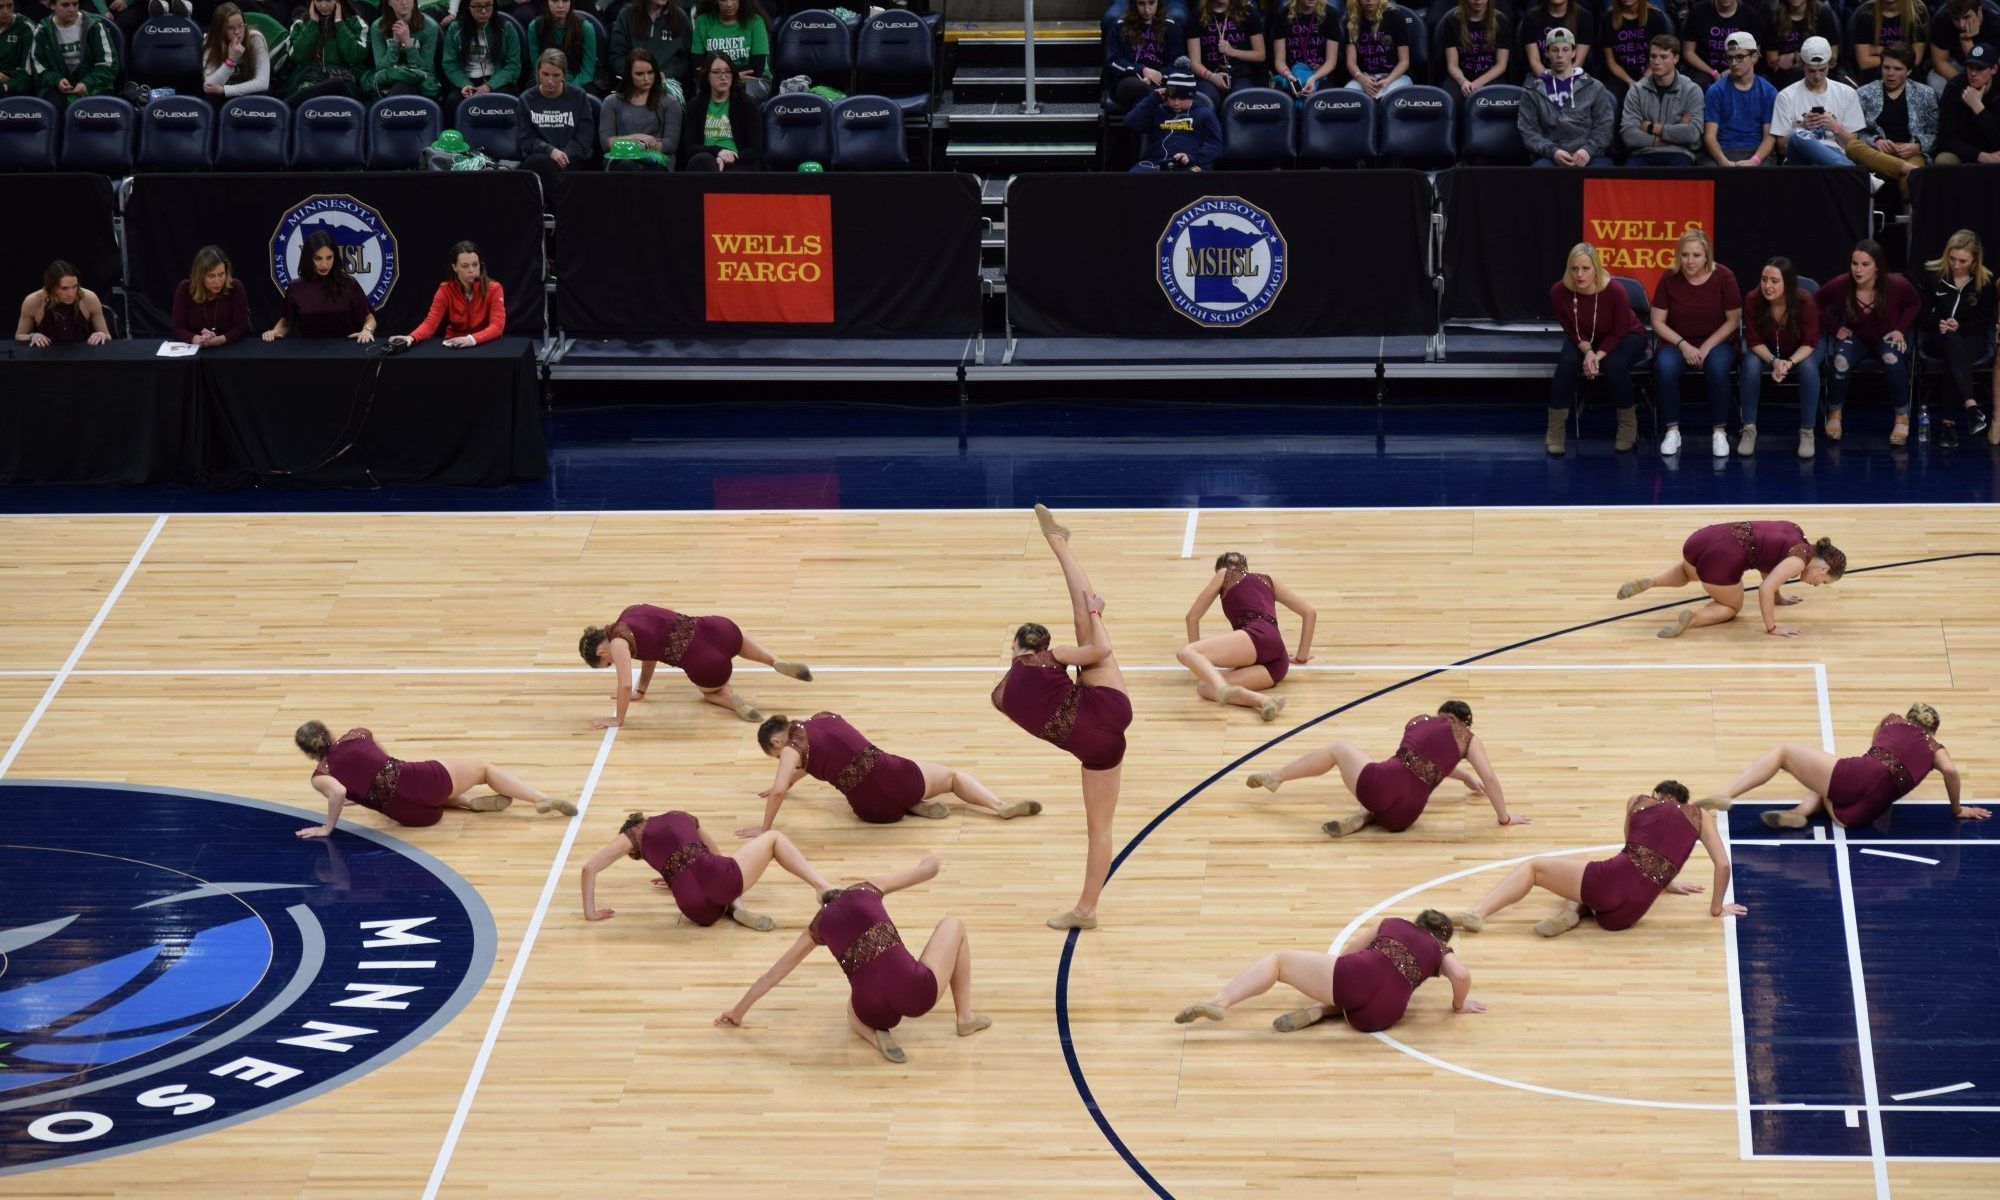 Maple Grove Dance Team